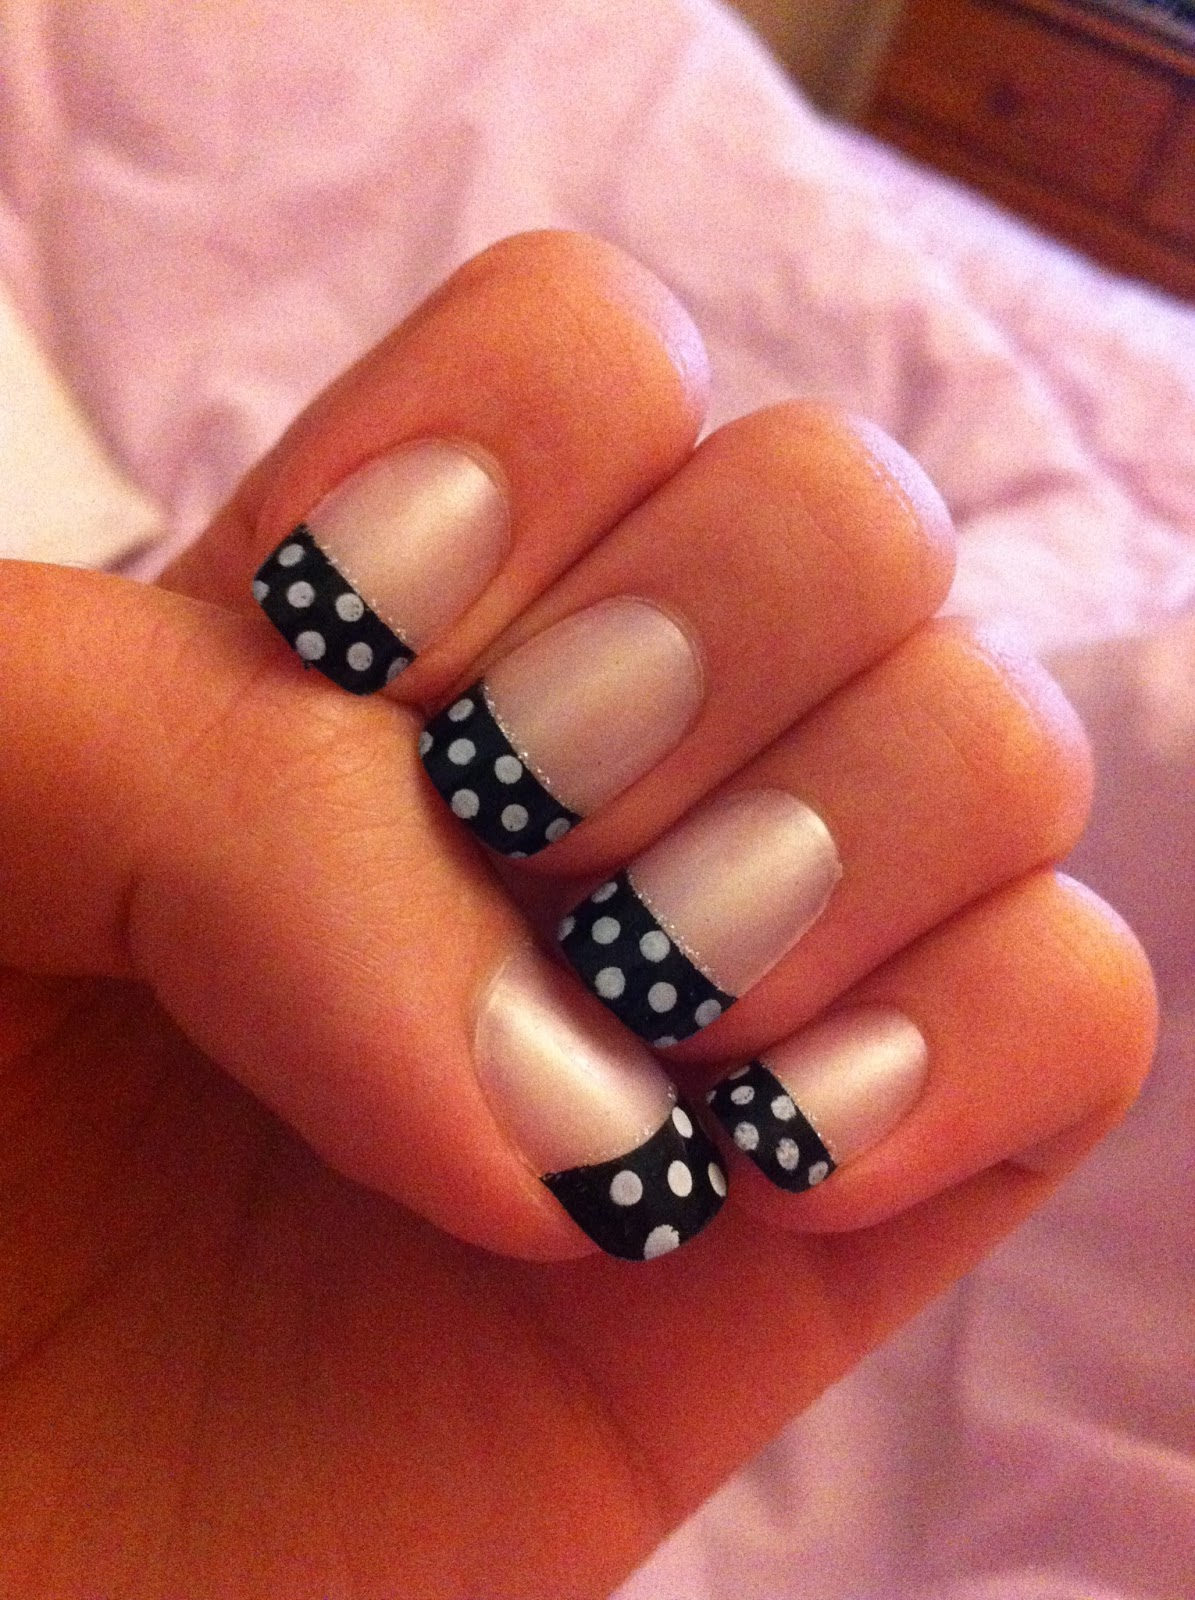 Laurenlovesmakeup'xoxo: Primark Pound Fashion Nails